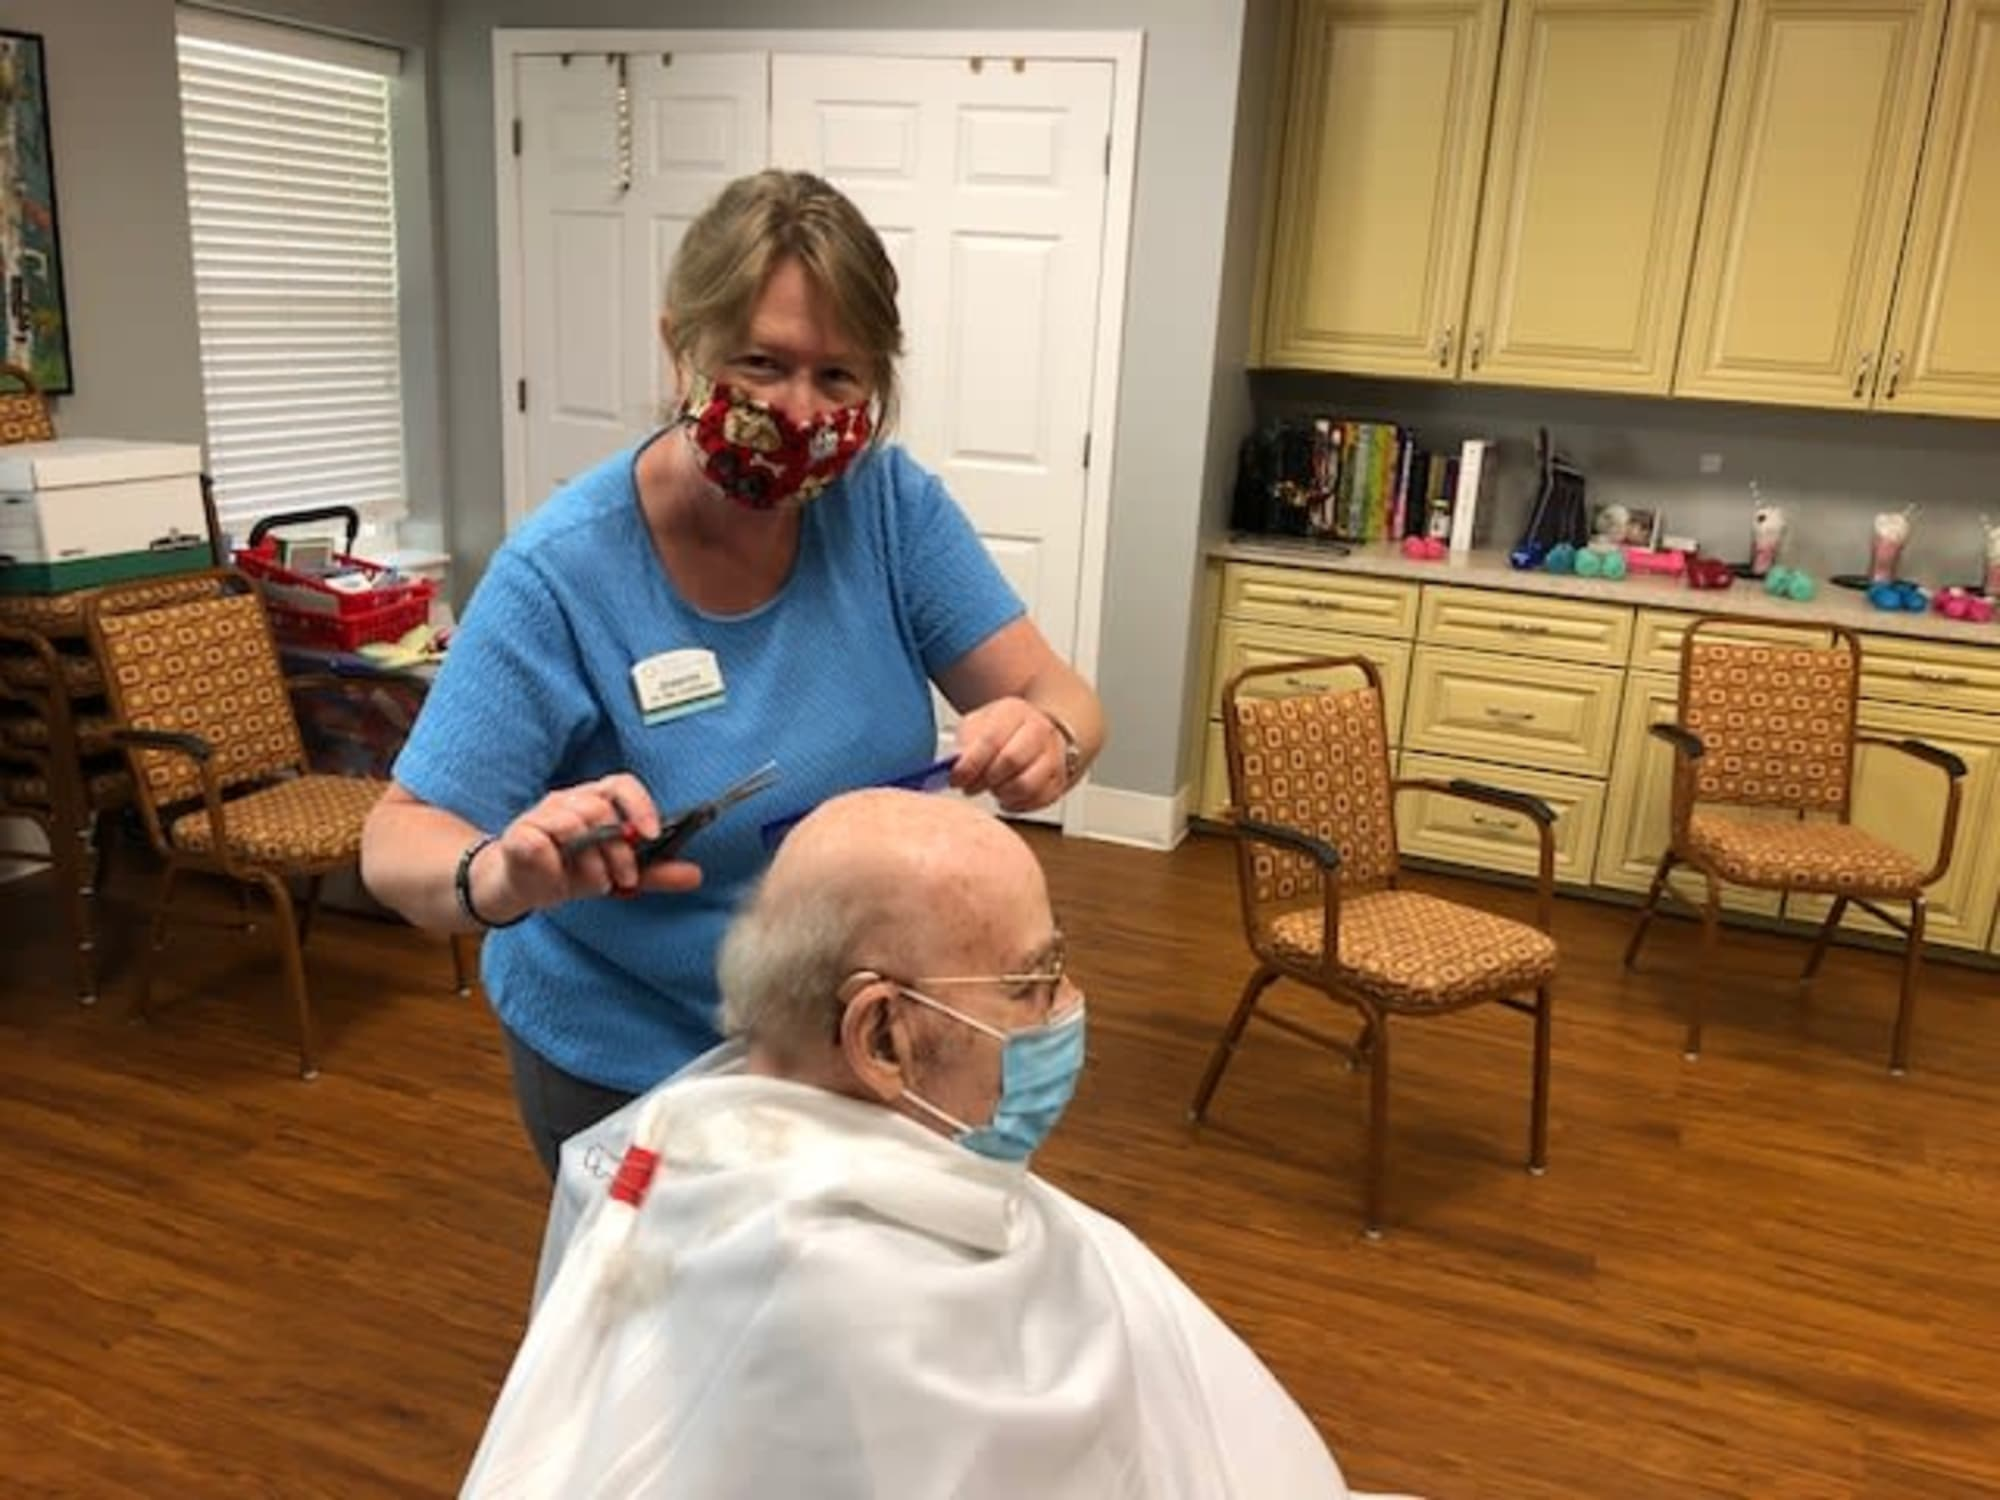 Haircutting at The Inn at Greenwood Village in Greenwood Village, Colorado